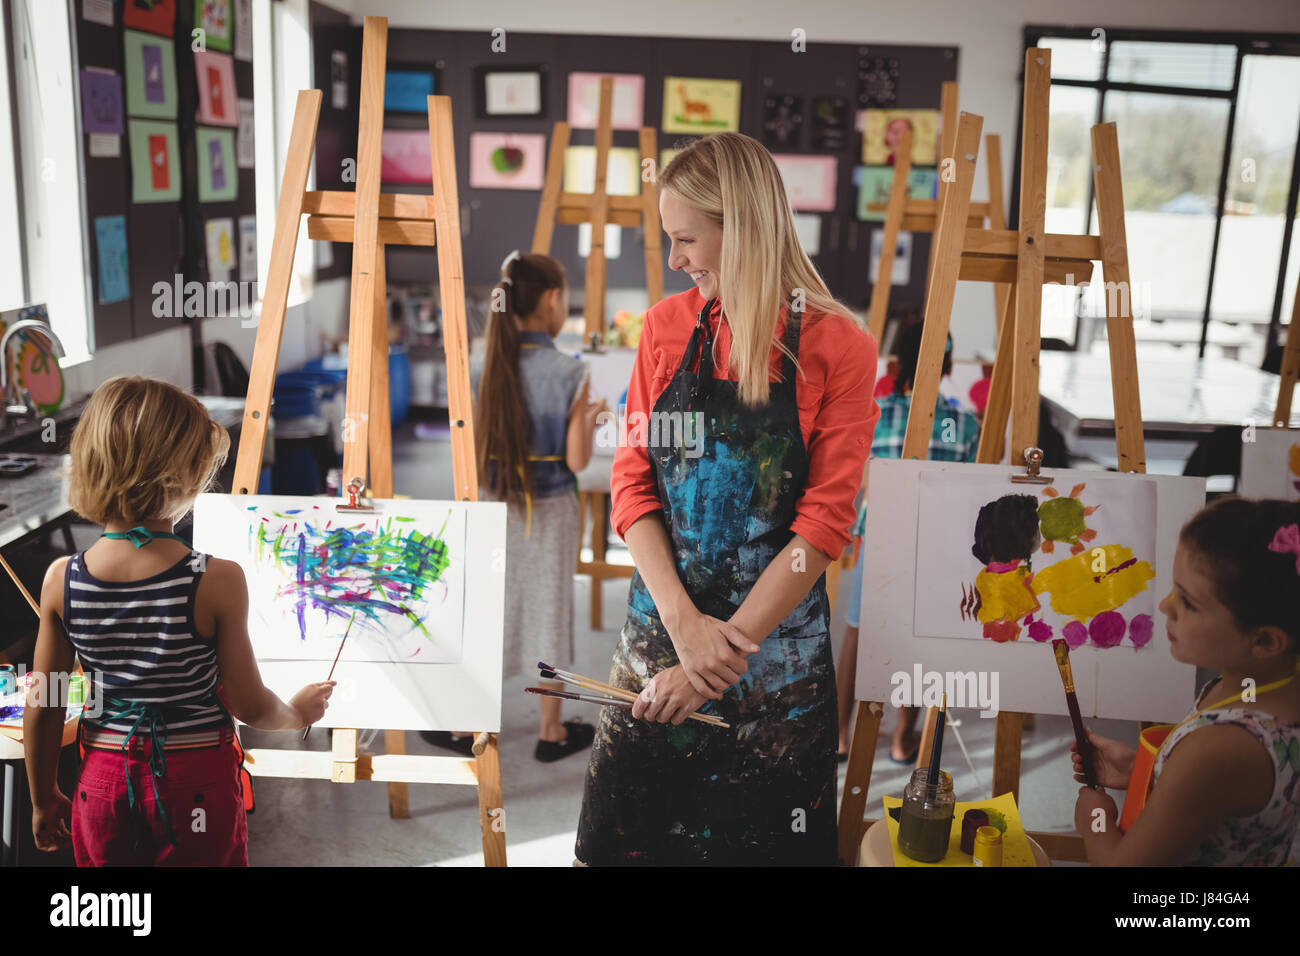 Teacher assisting schoolkid in drawing class at school - Stock Image